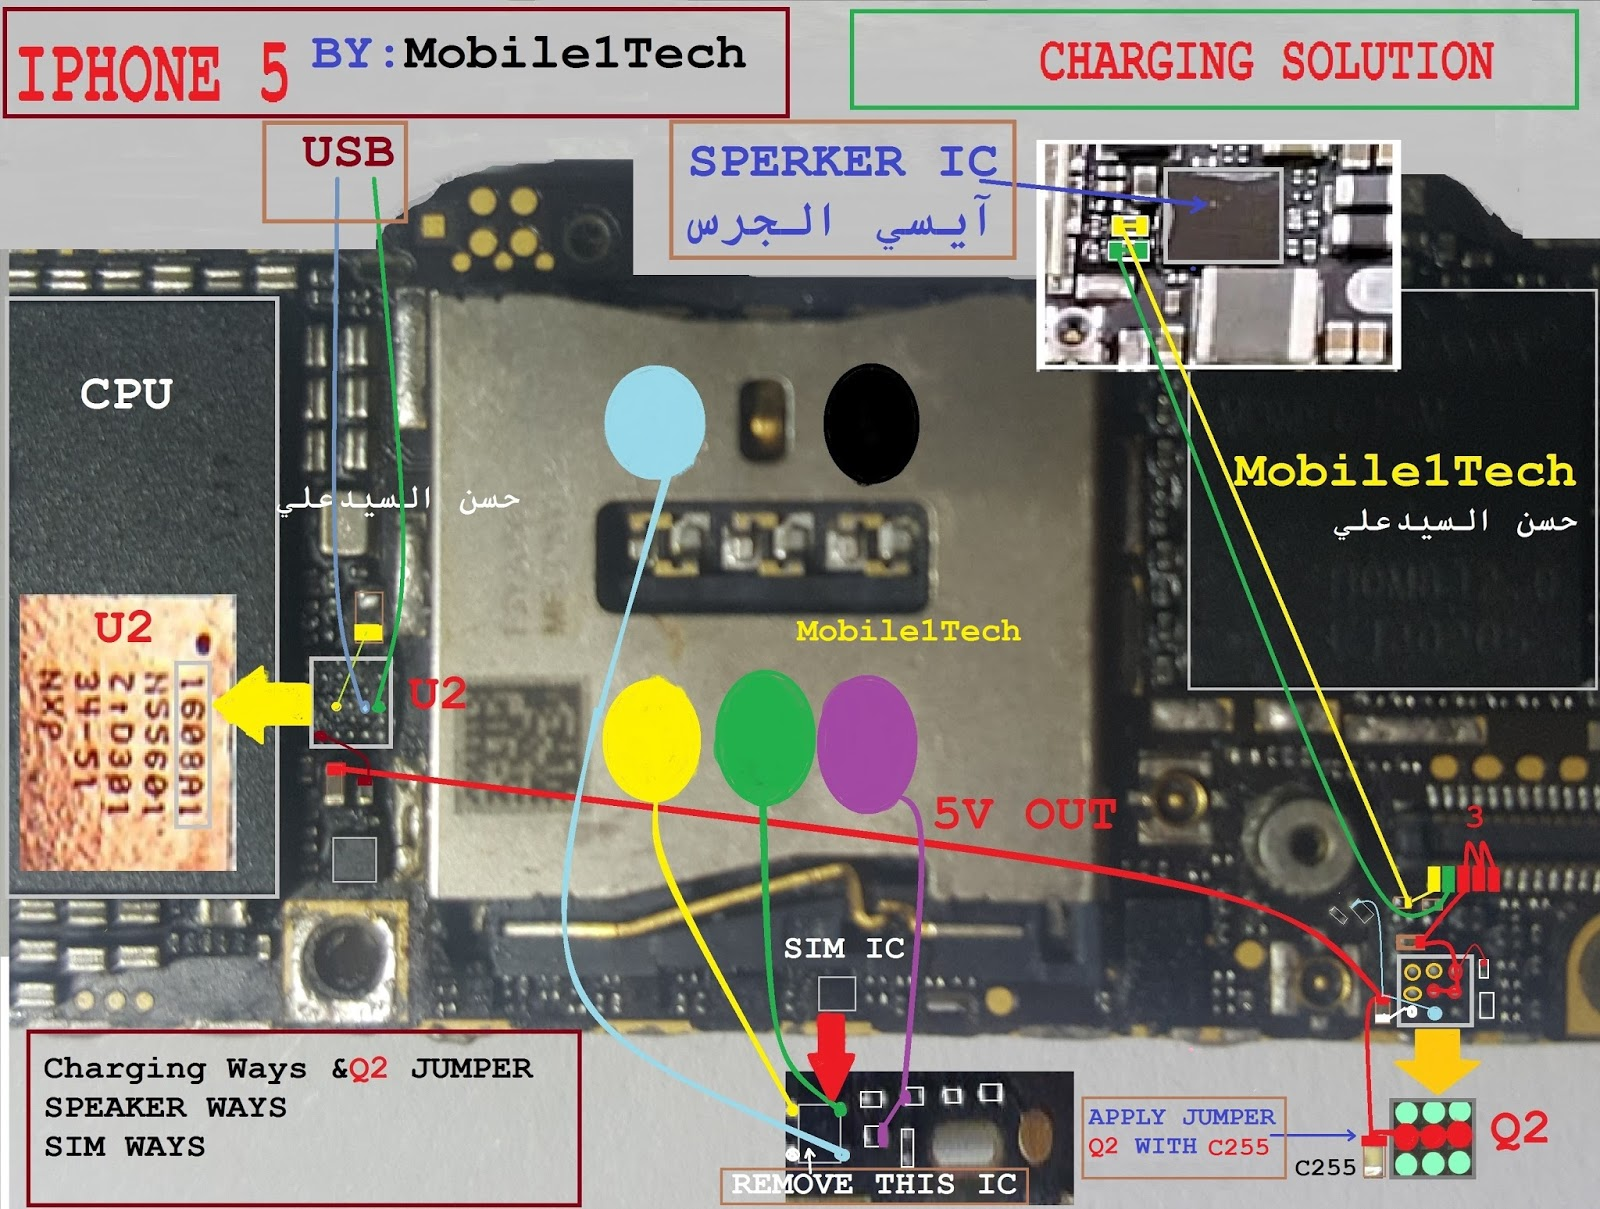 IPHONE 5 CHARGING & BATTERY WAYS | Mobile1Tech